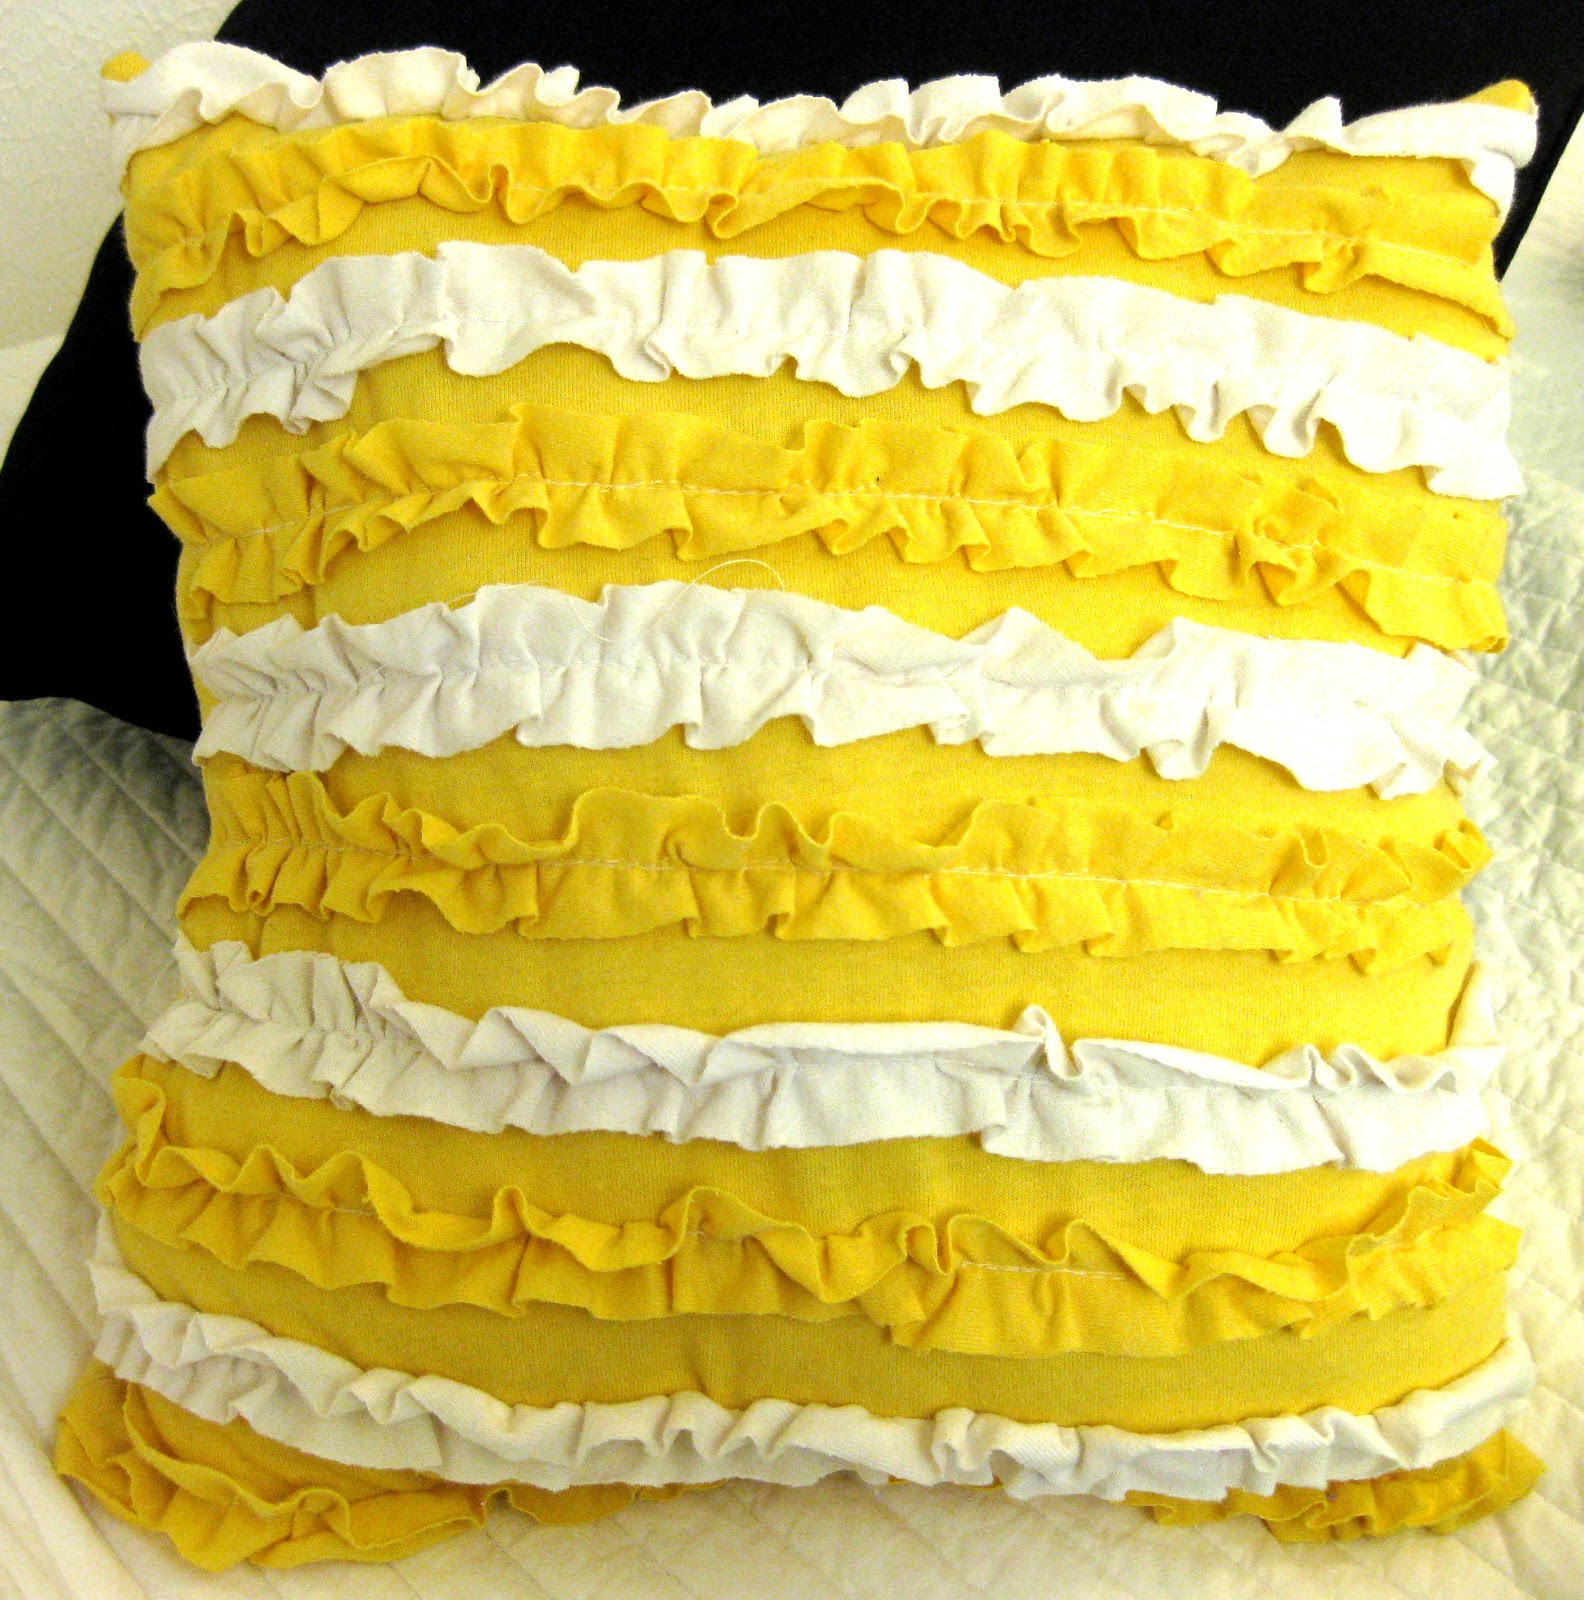 Throw Pillows With Ruffles : All Things Bright and Beautiful: Ruffle Throw Pillow